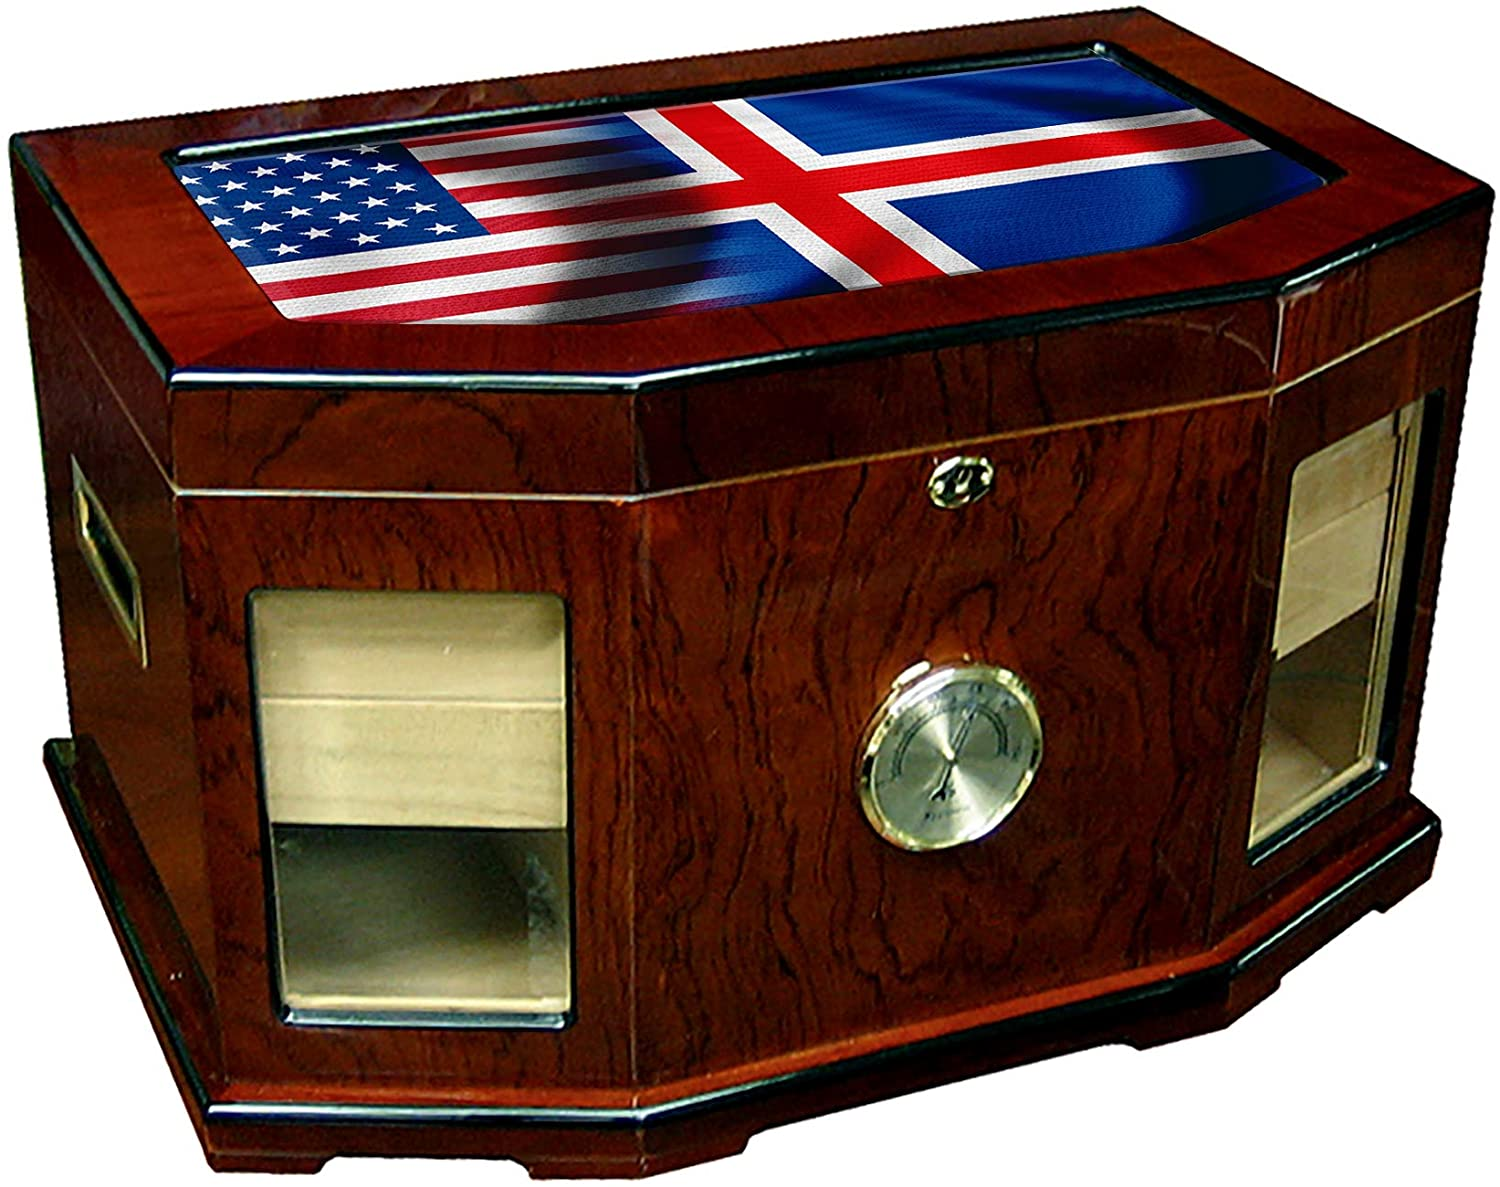 Large Premium Desktop Humidor - Glass Top - Flag of Iceland (Icelander) - Waves with USA Flag - 300 Cigar Capacity - Cedar Lined with Two humidifiers & Large Front Mounted Hygrometer.